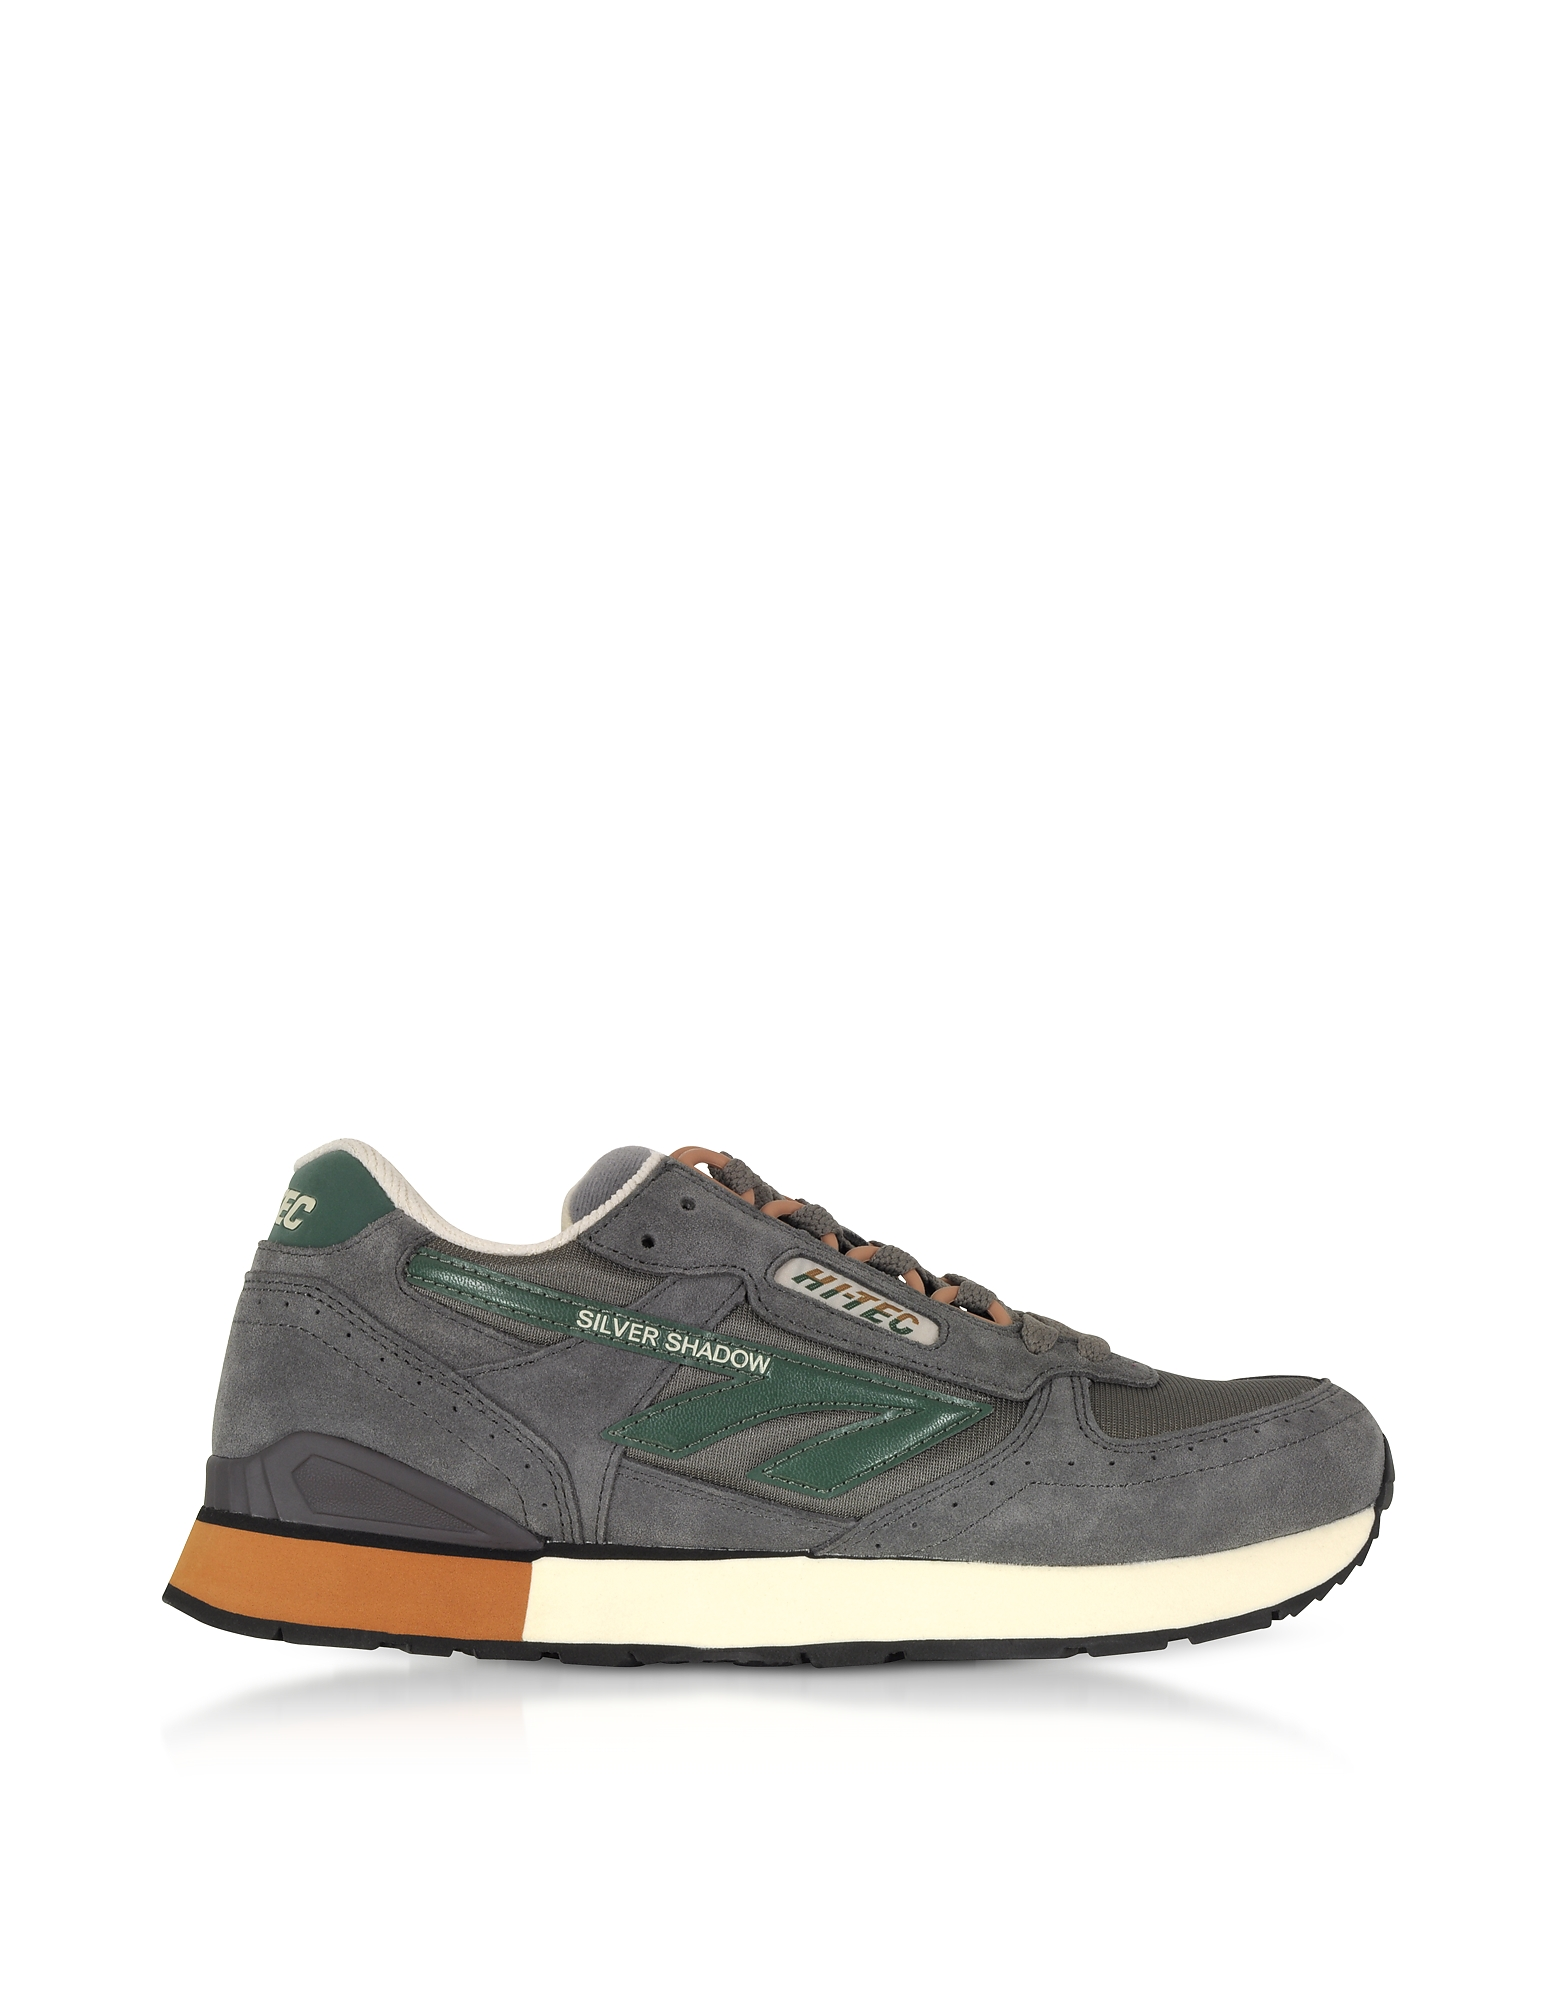 Hi-Tec Shoes, Silver Shadow Gull Grey/Laurel Wreath/Wood Mesh and Suede Men's Trainers